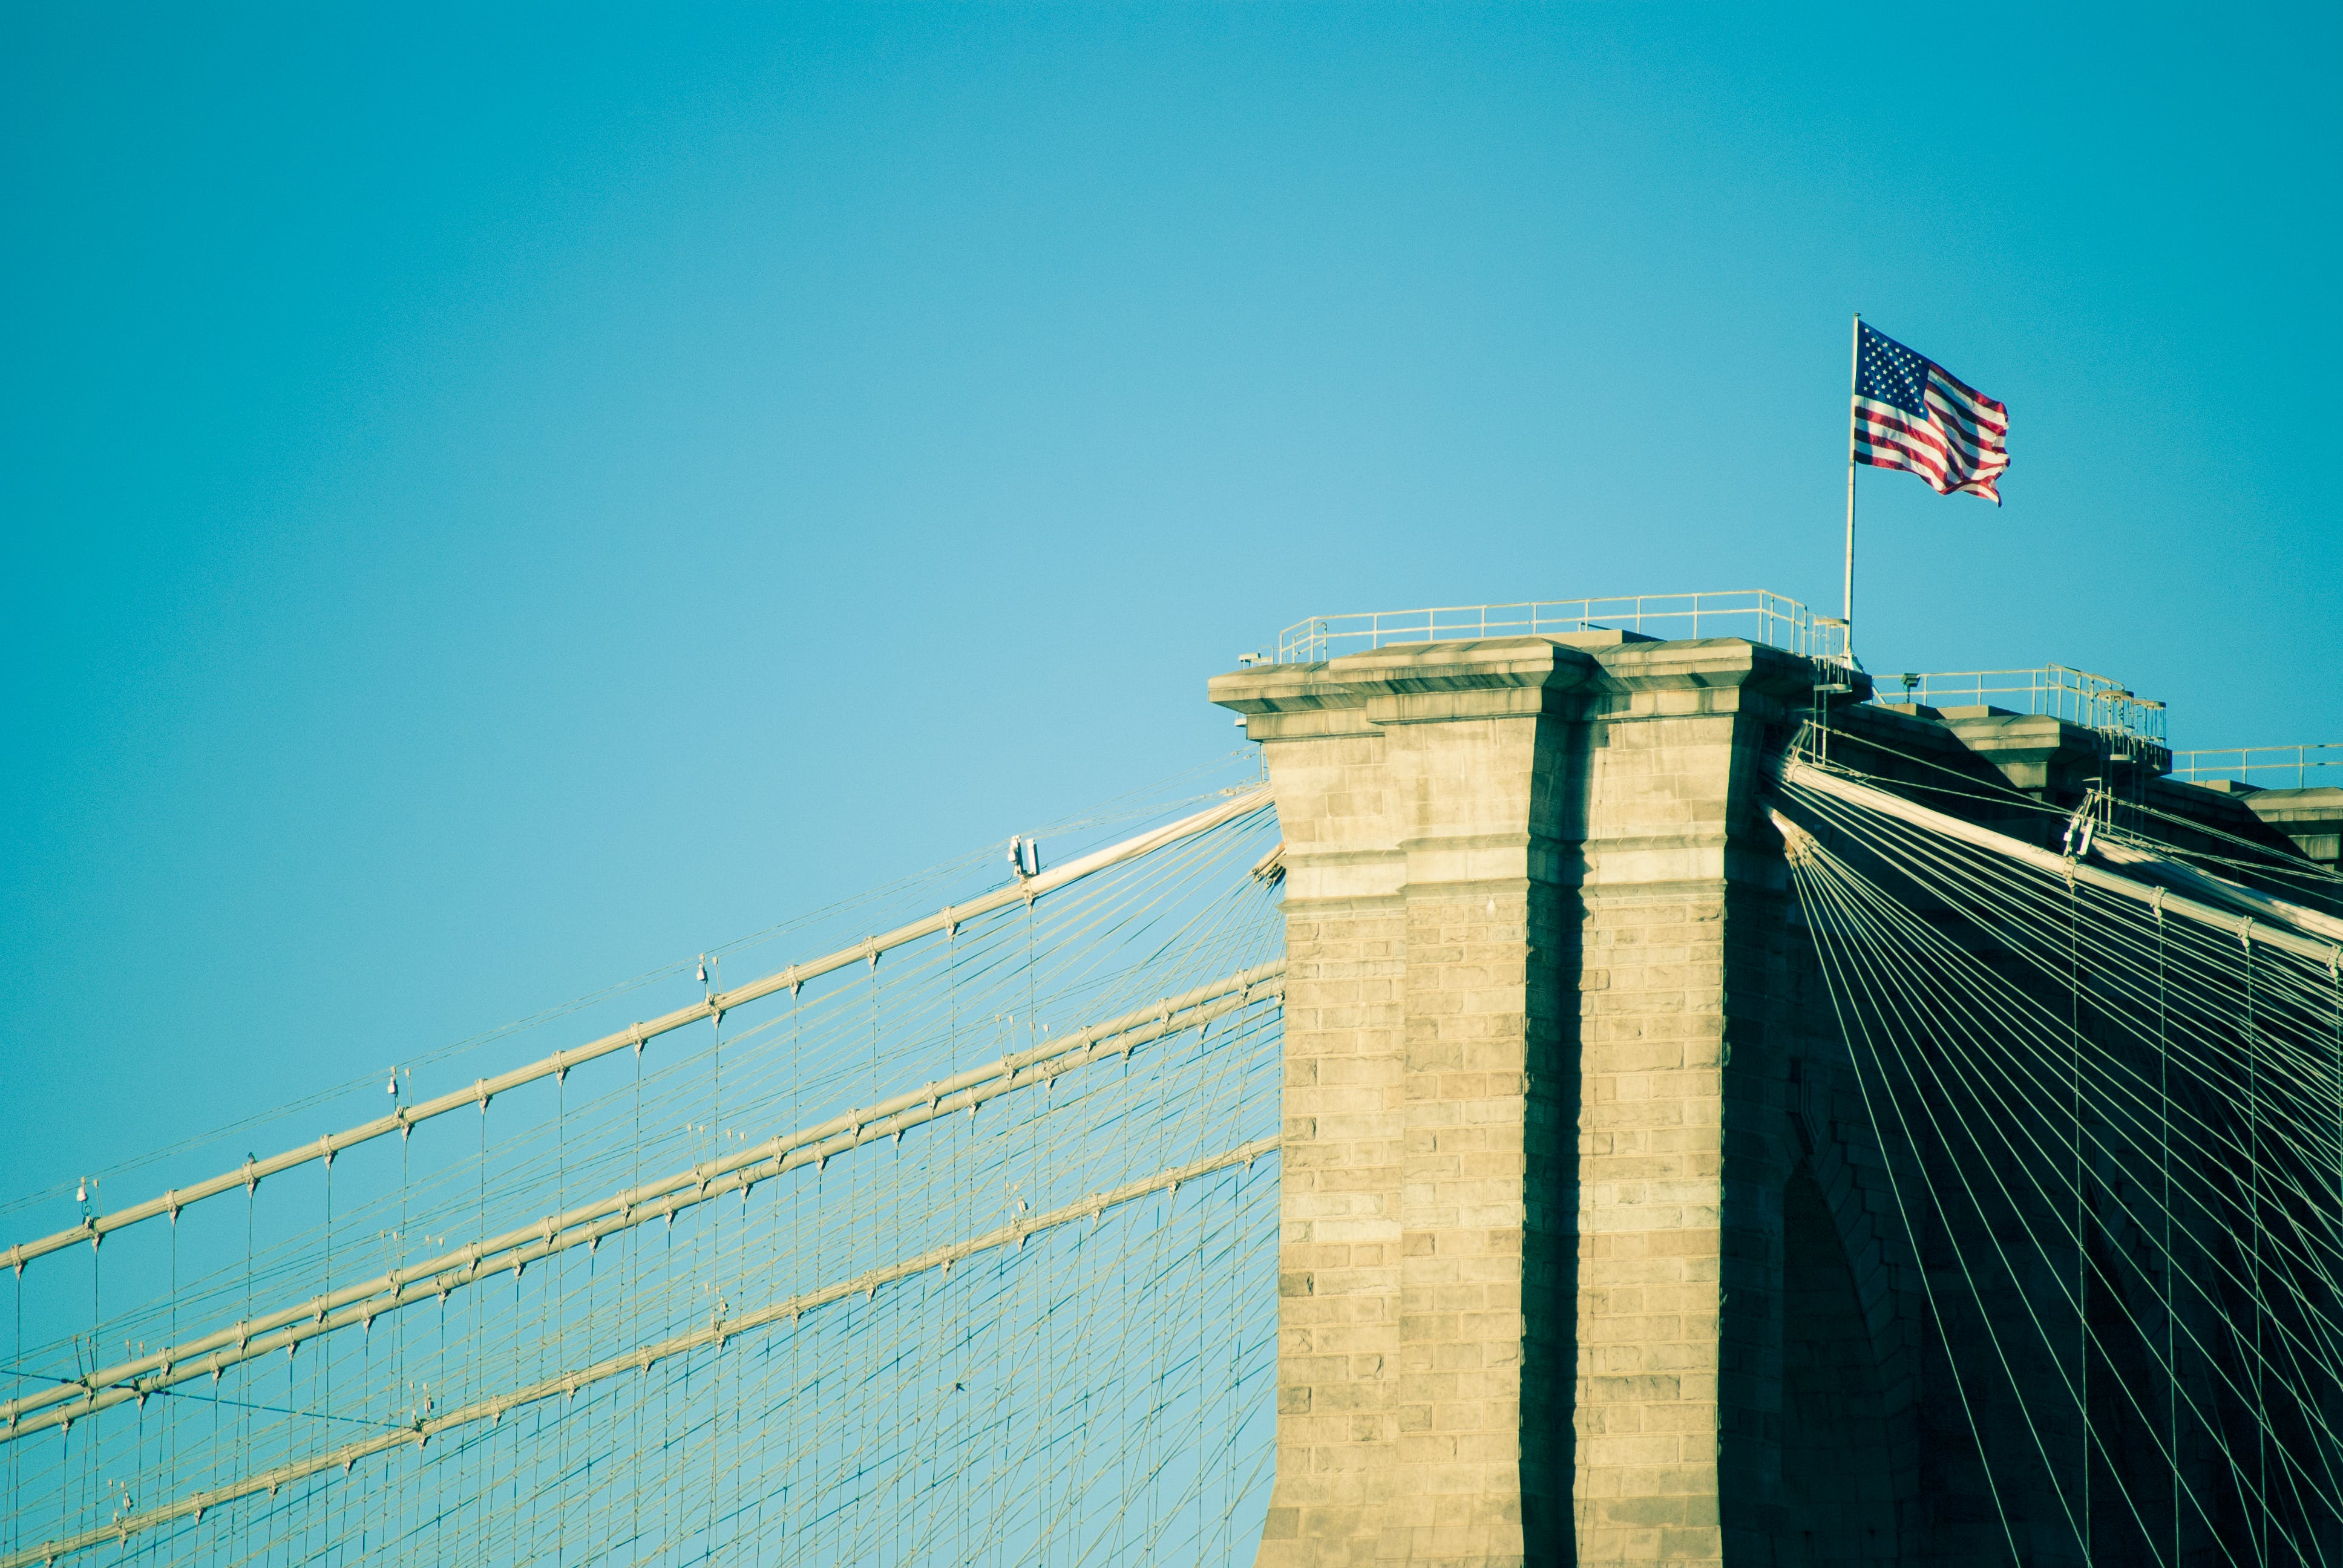 Free stock photo of united states of america, flag, blue sky, filters